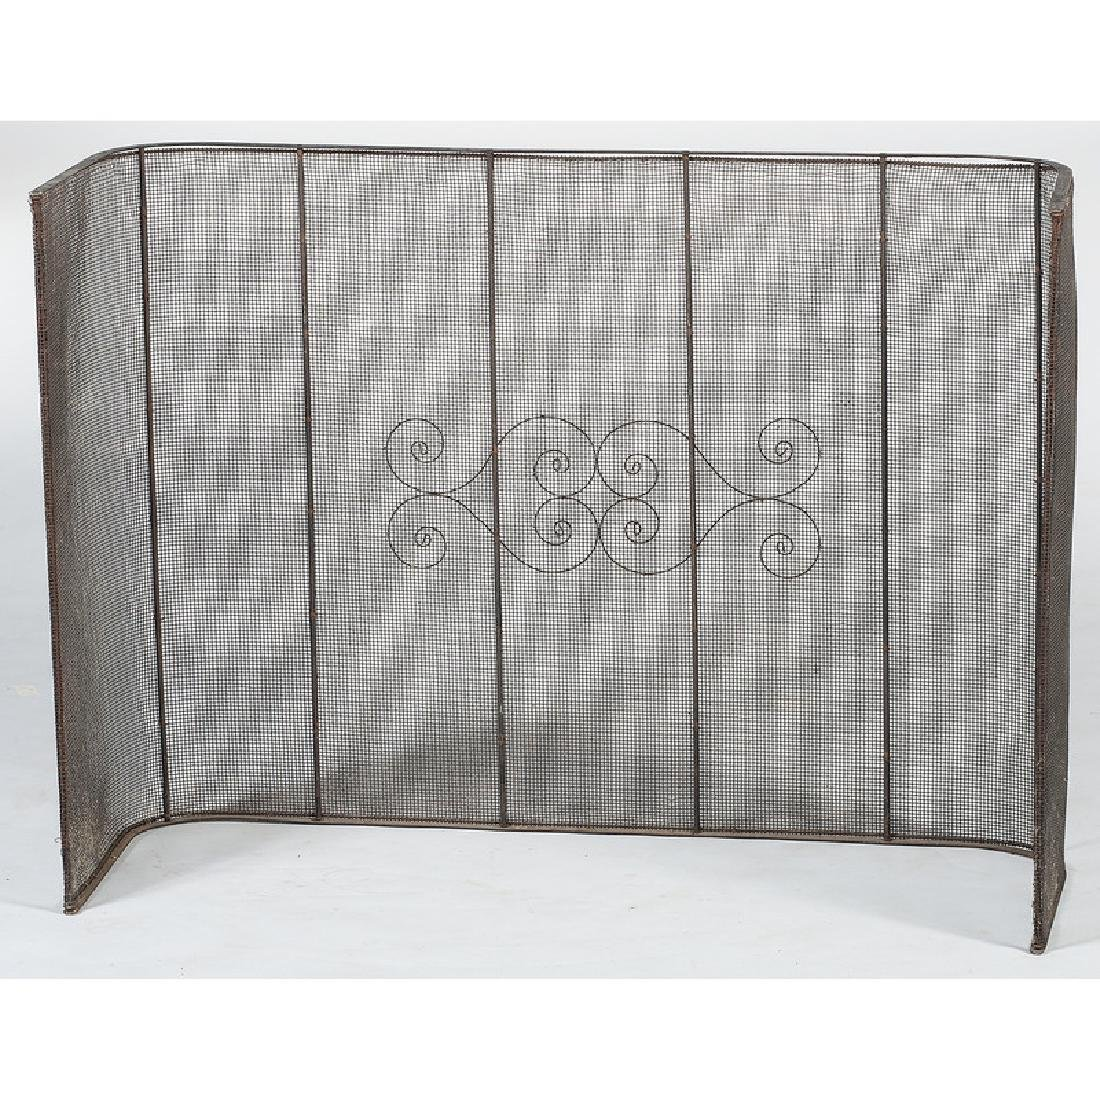 Wirework Fireplace Screen - 2